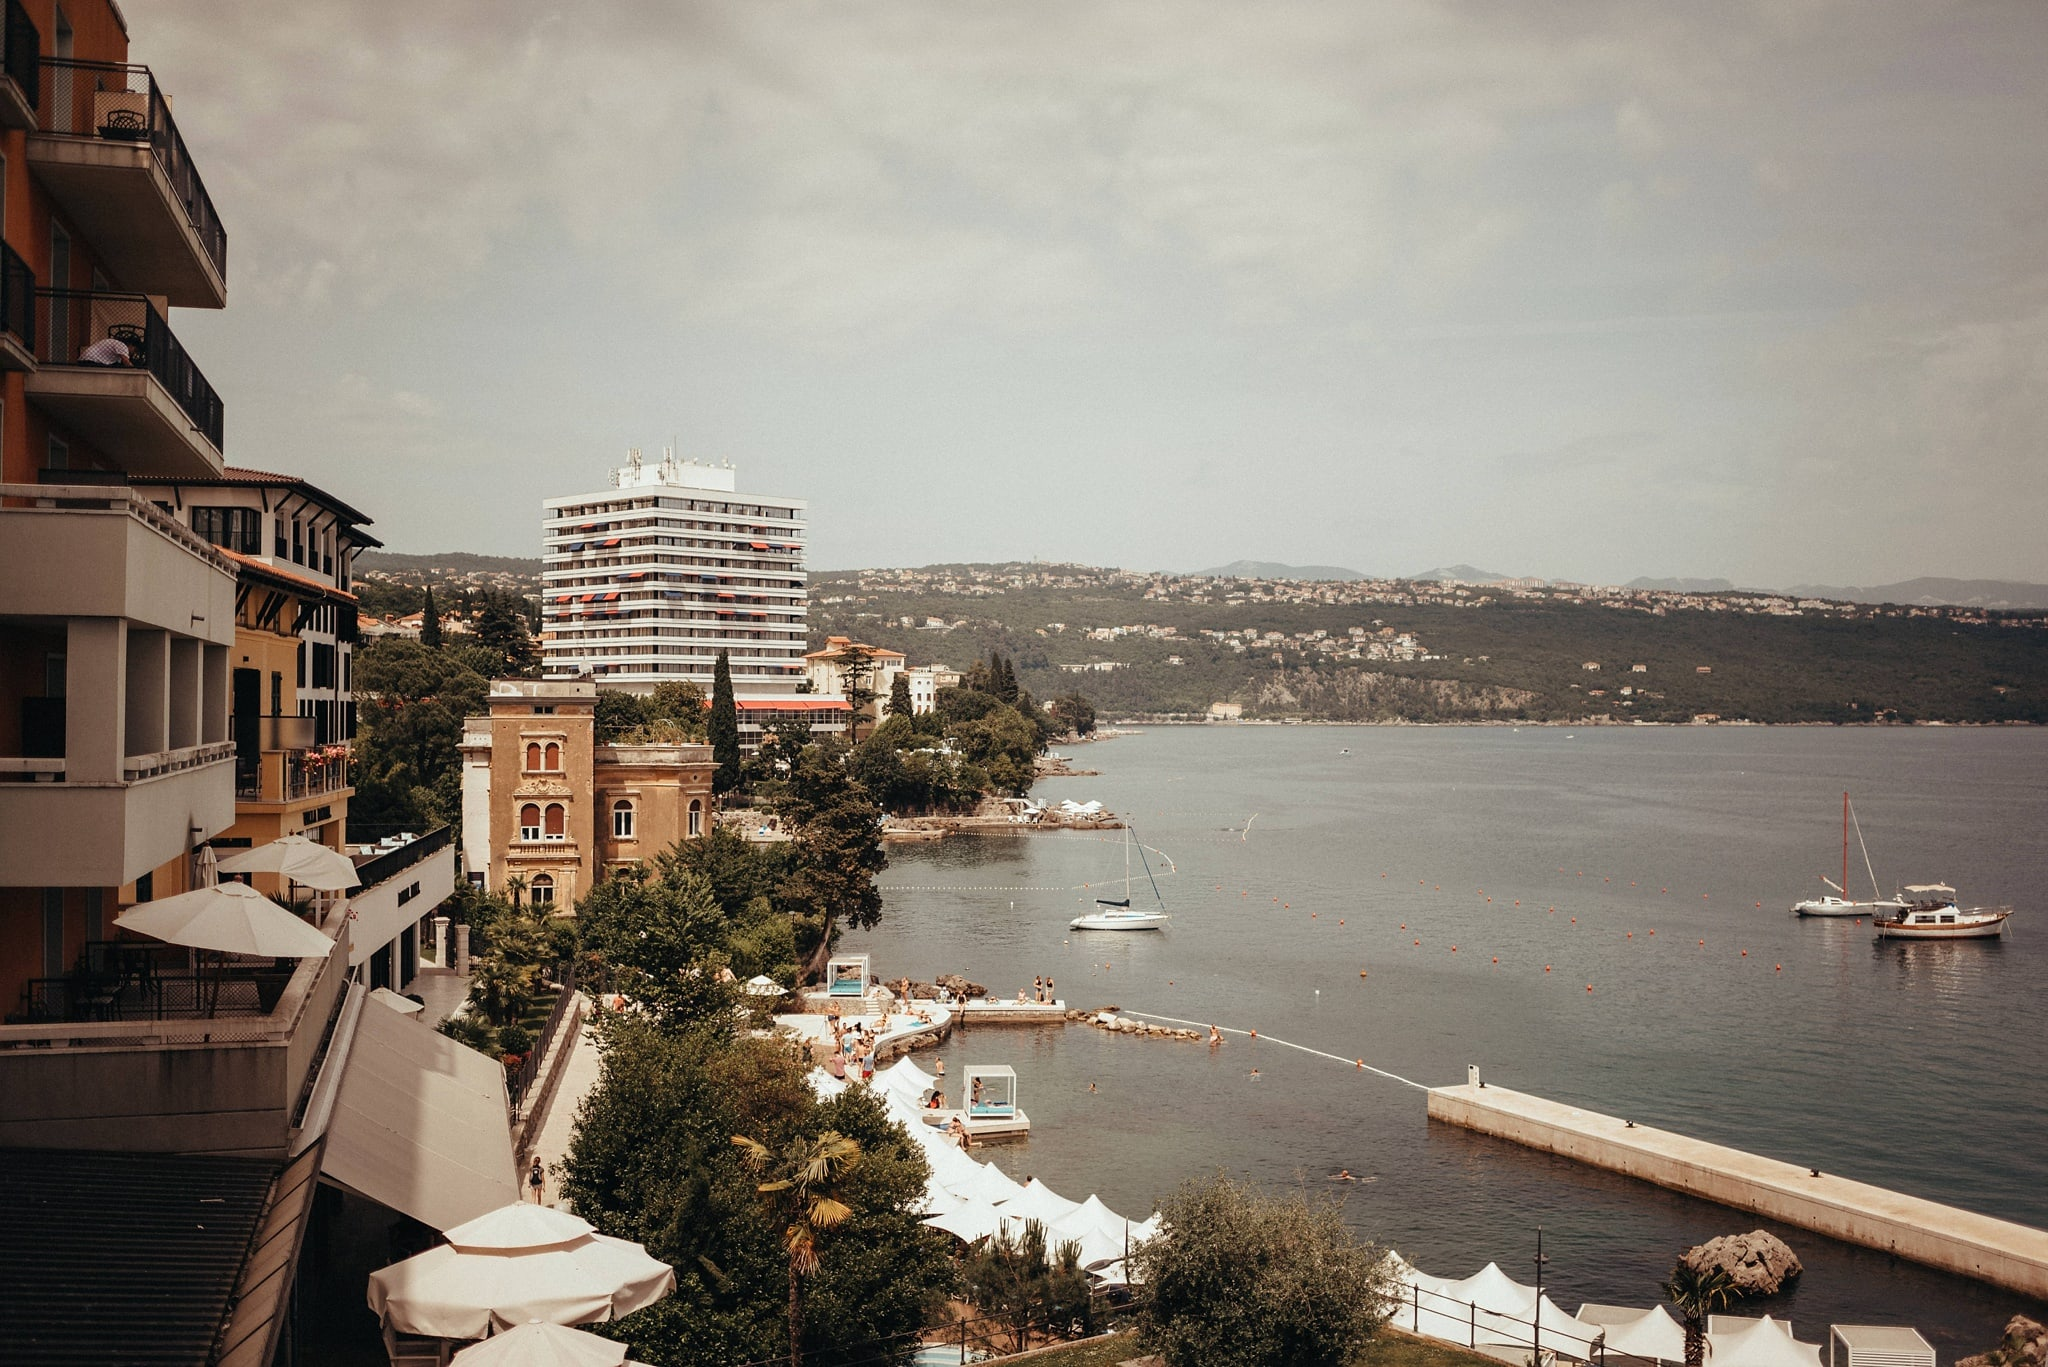 Panorama view of Royal Hotel Opatija